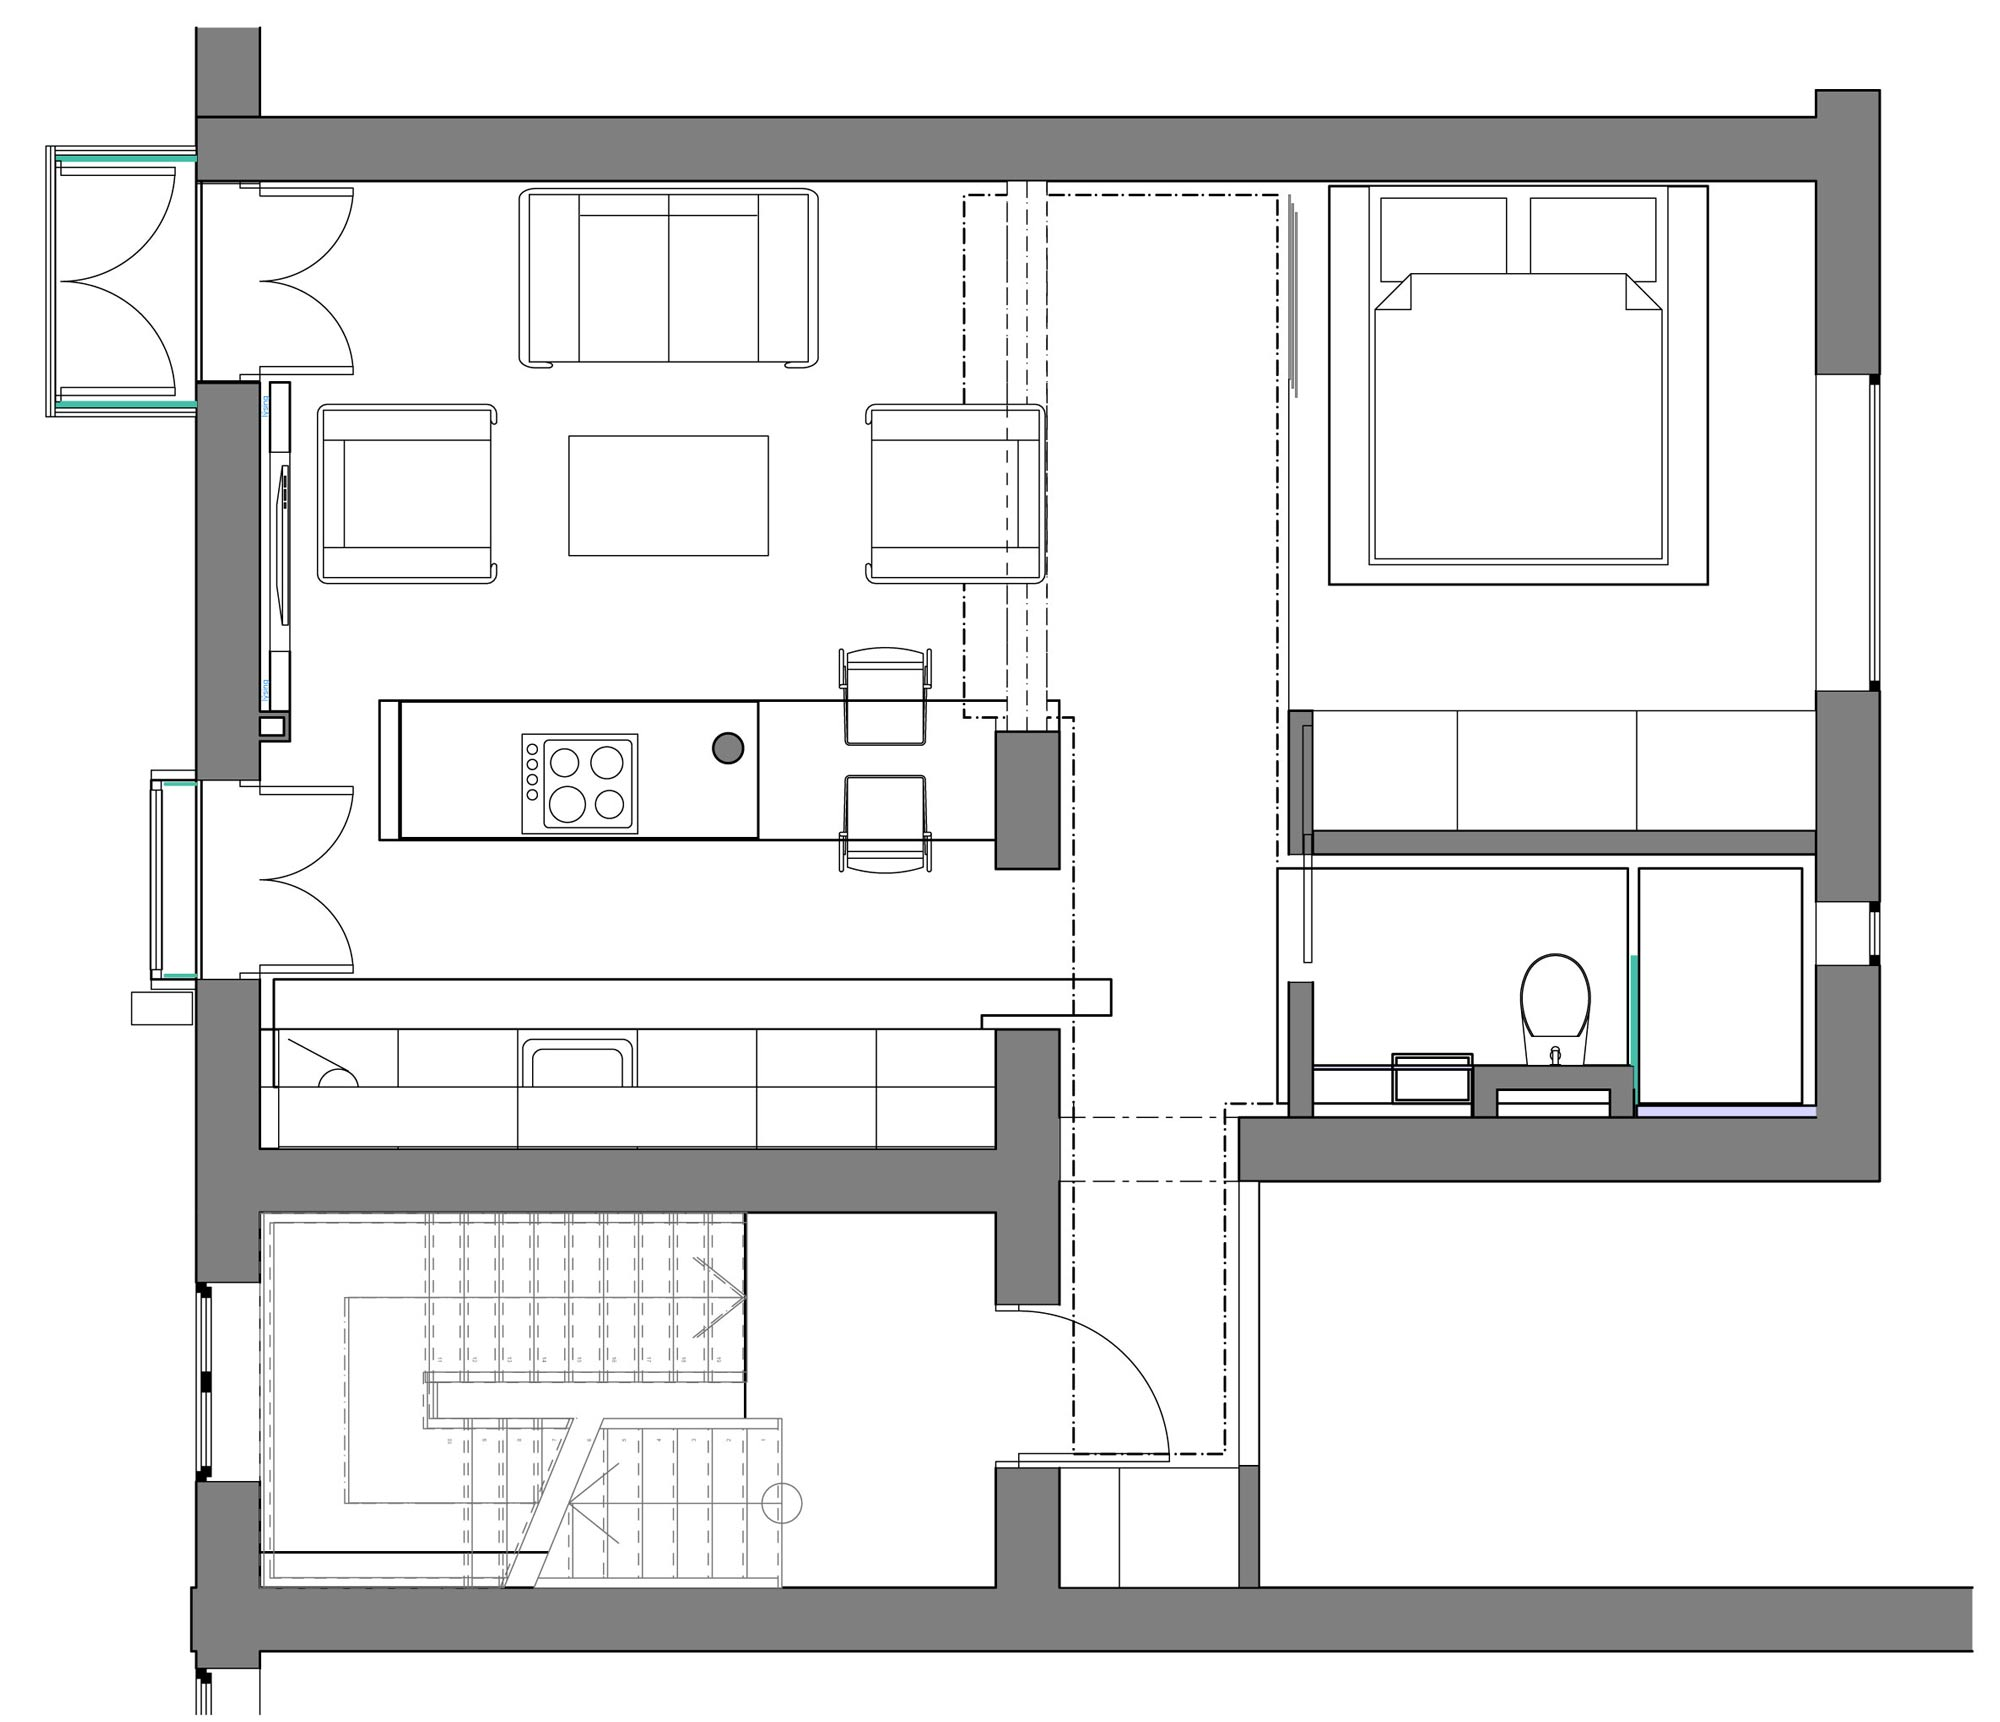 Small Apartment Plan apartment-reykjavik-iceland-floor-plan